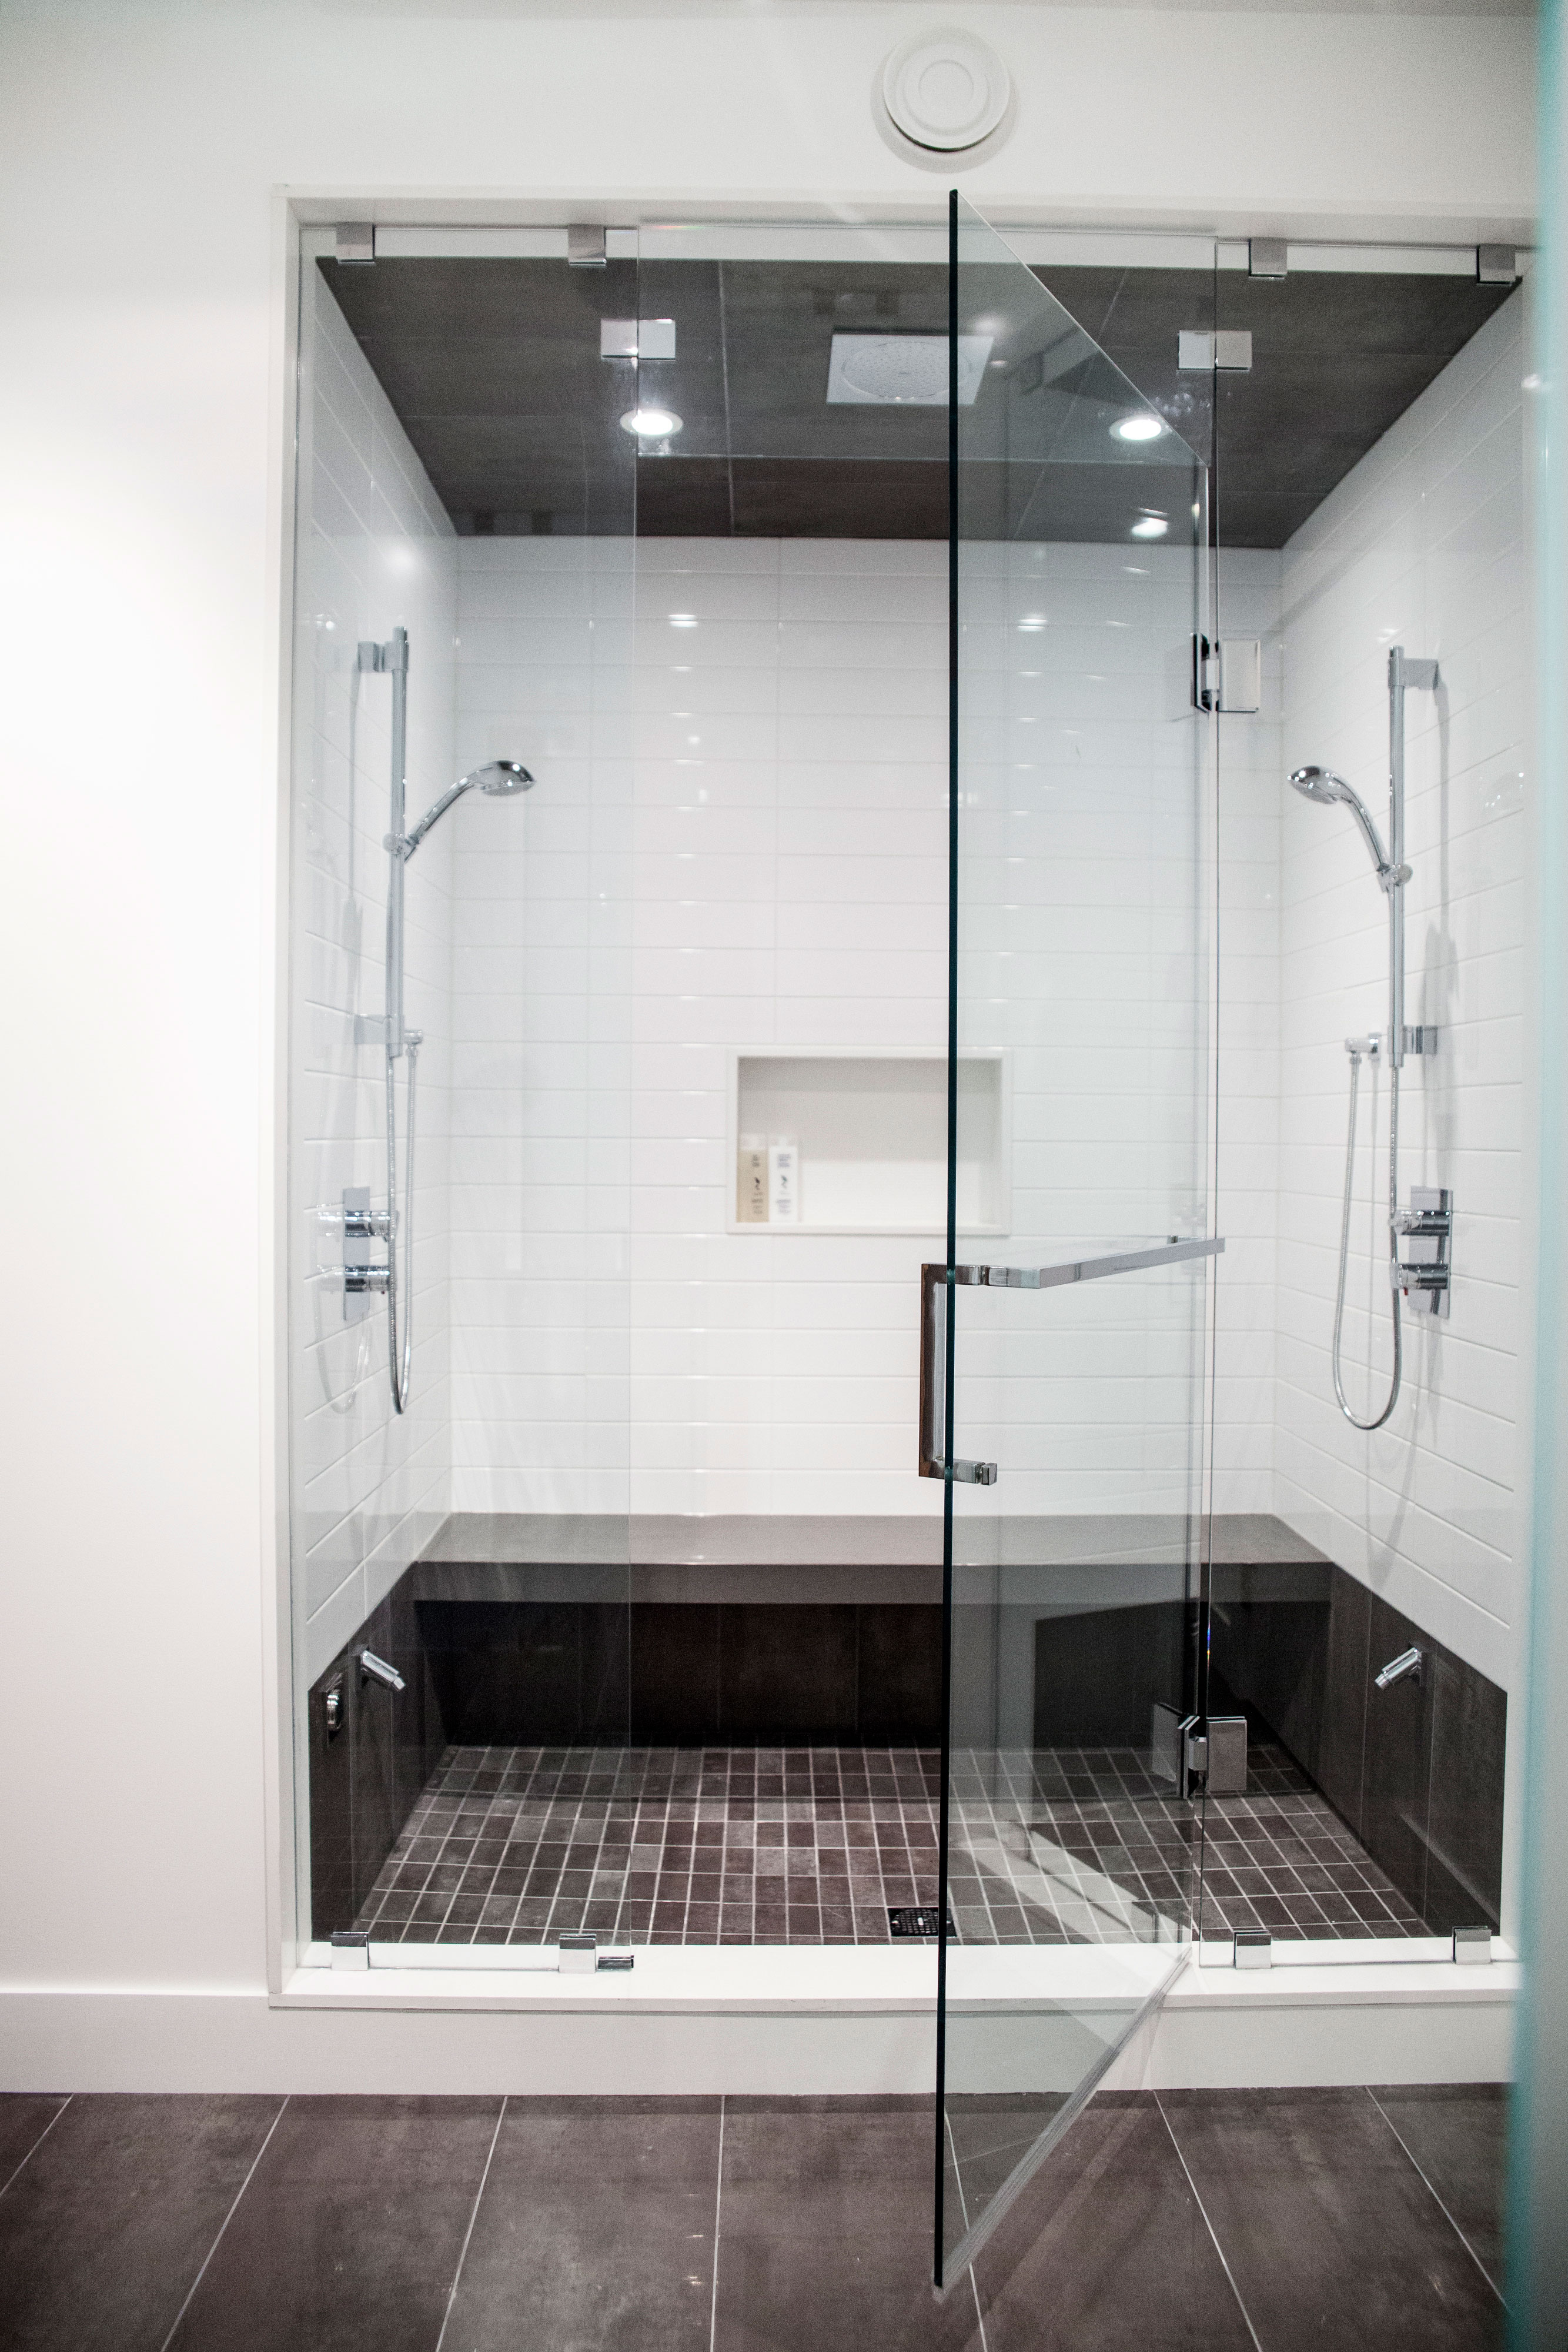 this is the related images of Steam Shower Pictures